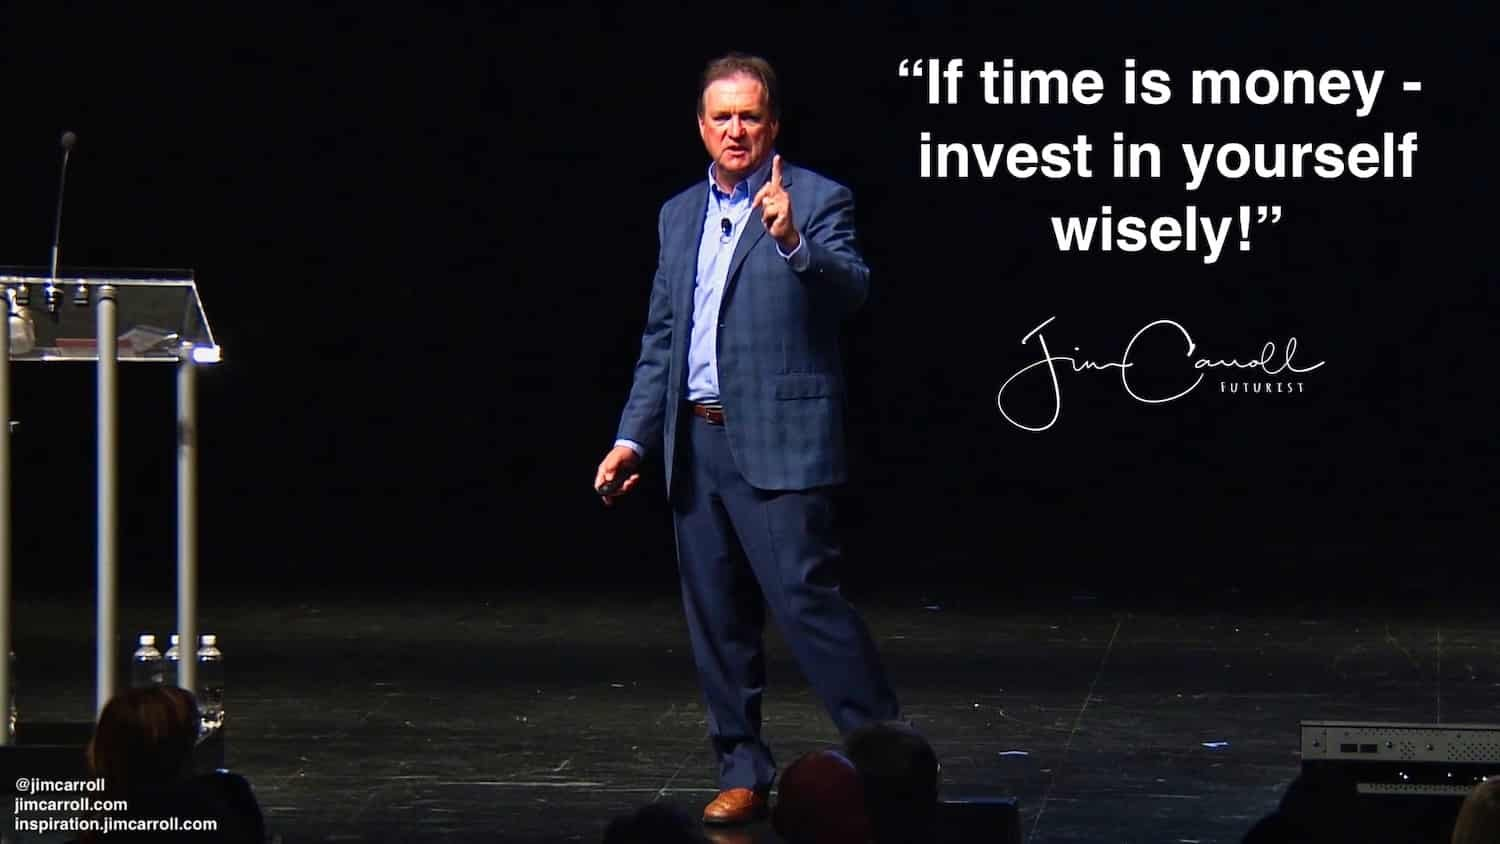 """Daily Inspiration: """"If time is money - invest in yourself wisely!"""""""